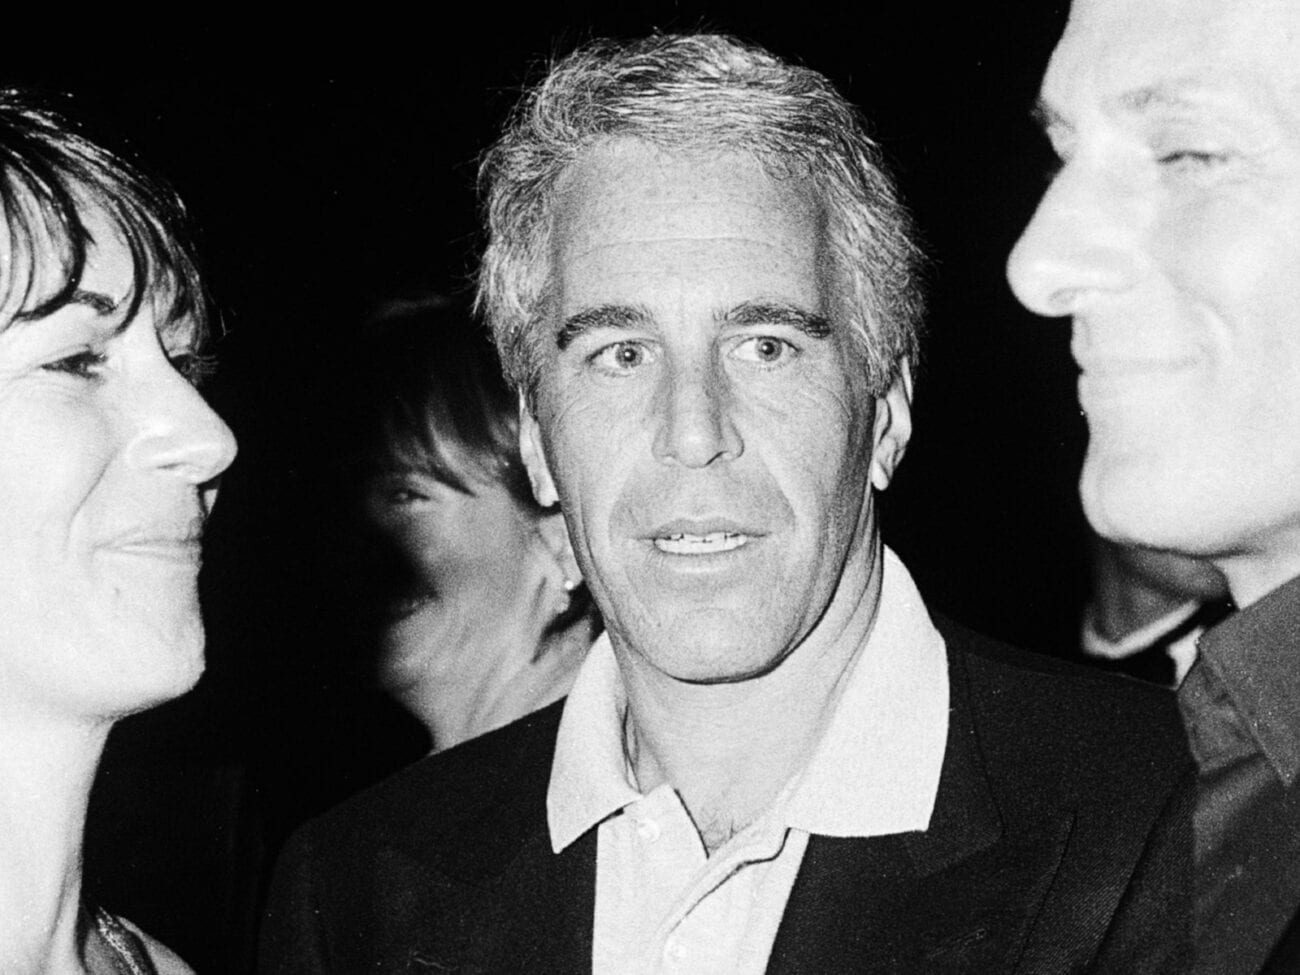 The guards on duty when Jeffrey Epstein died just took a plea deal. Delve deeper into the circumstances surrounding Epstein's death right here.